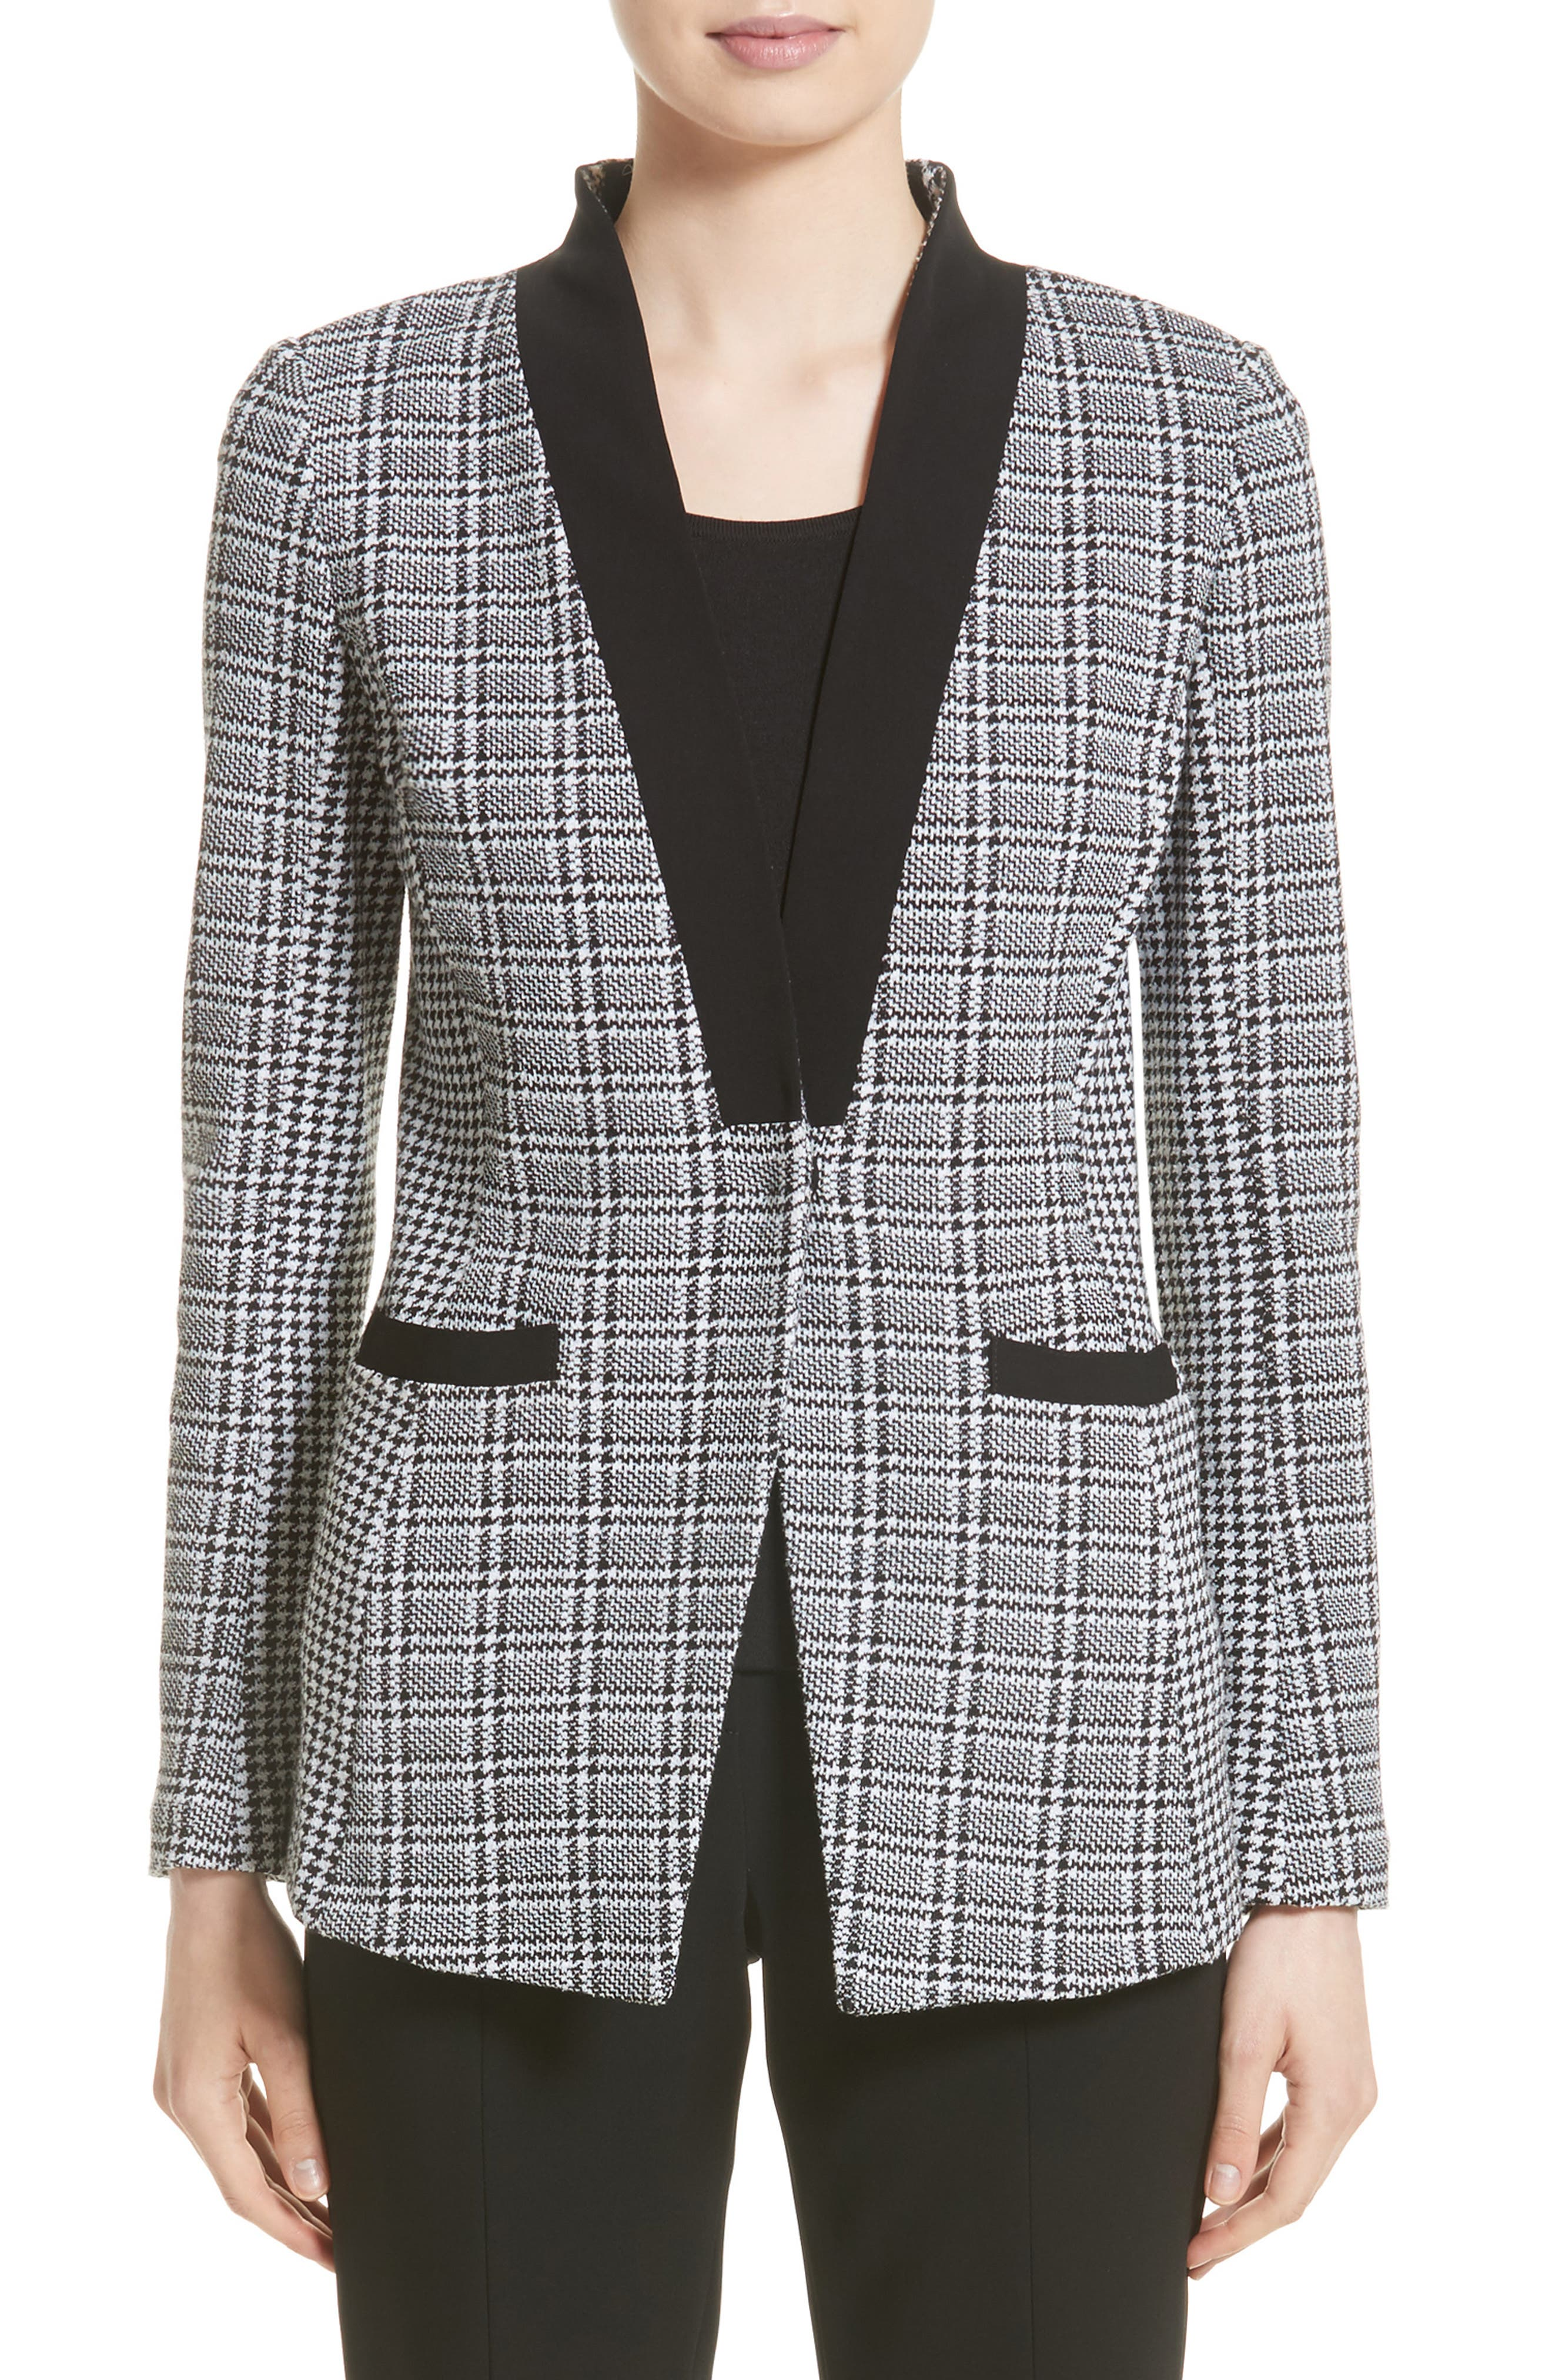 Mini Houndstooth Plaid Jacket,                             Main thumbnail 1, color,                             020